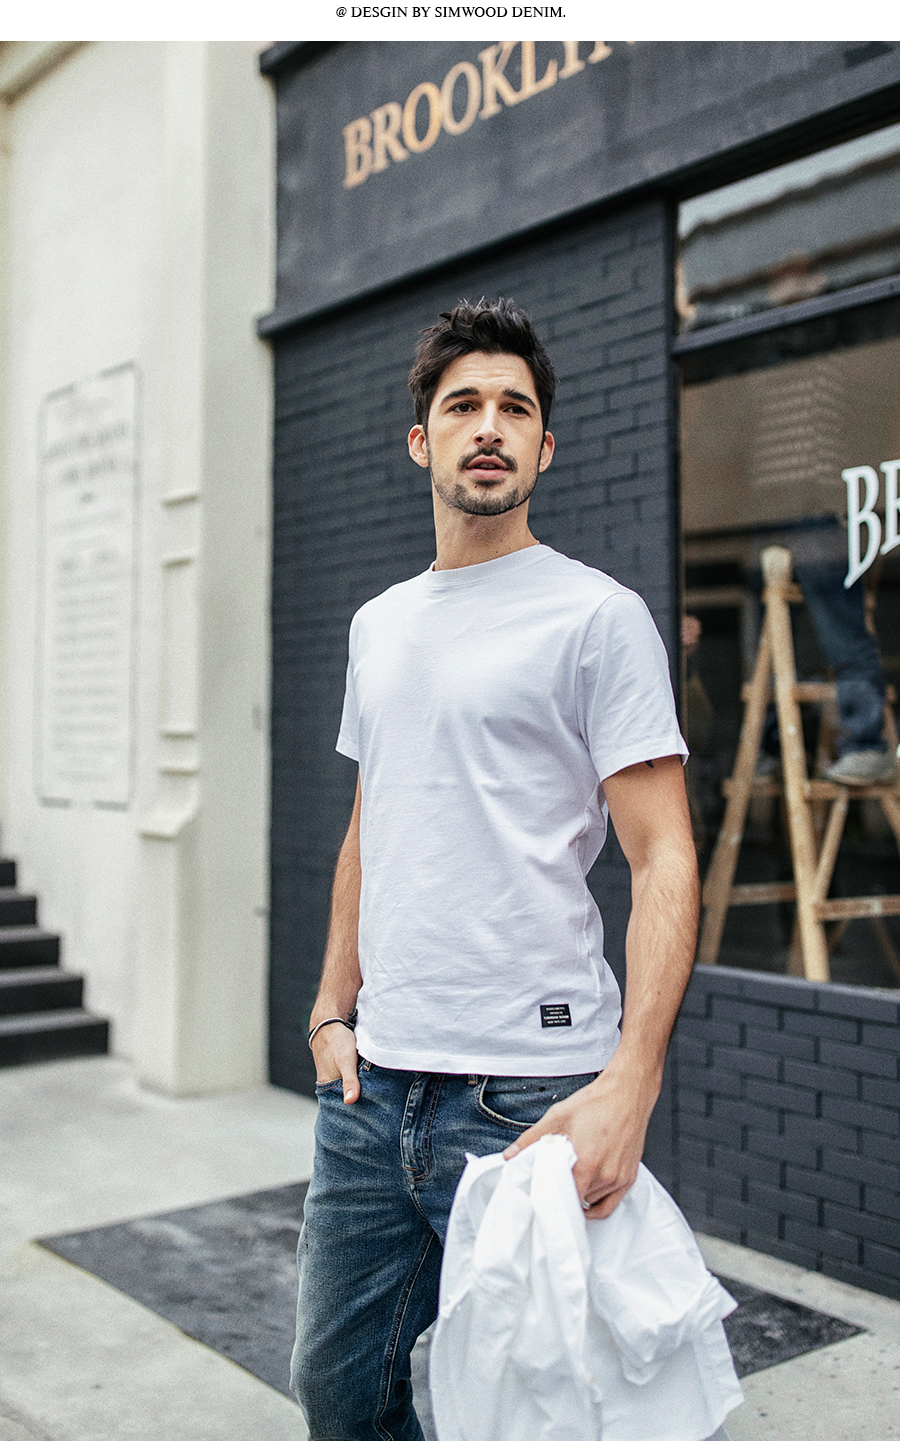 SIMWOOD 19 Summer New T-Shirt Men 100% Cotton Solid Color Casual t shirt Basics O-neck High Quality Plus Size Male Tee 190004 10